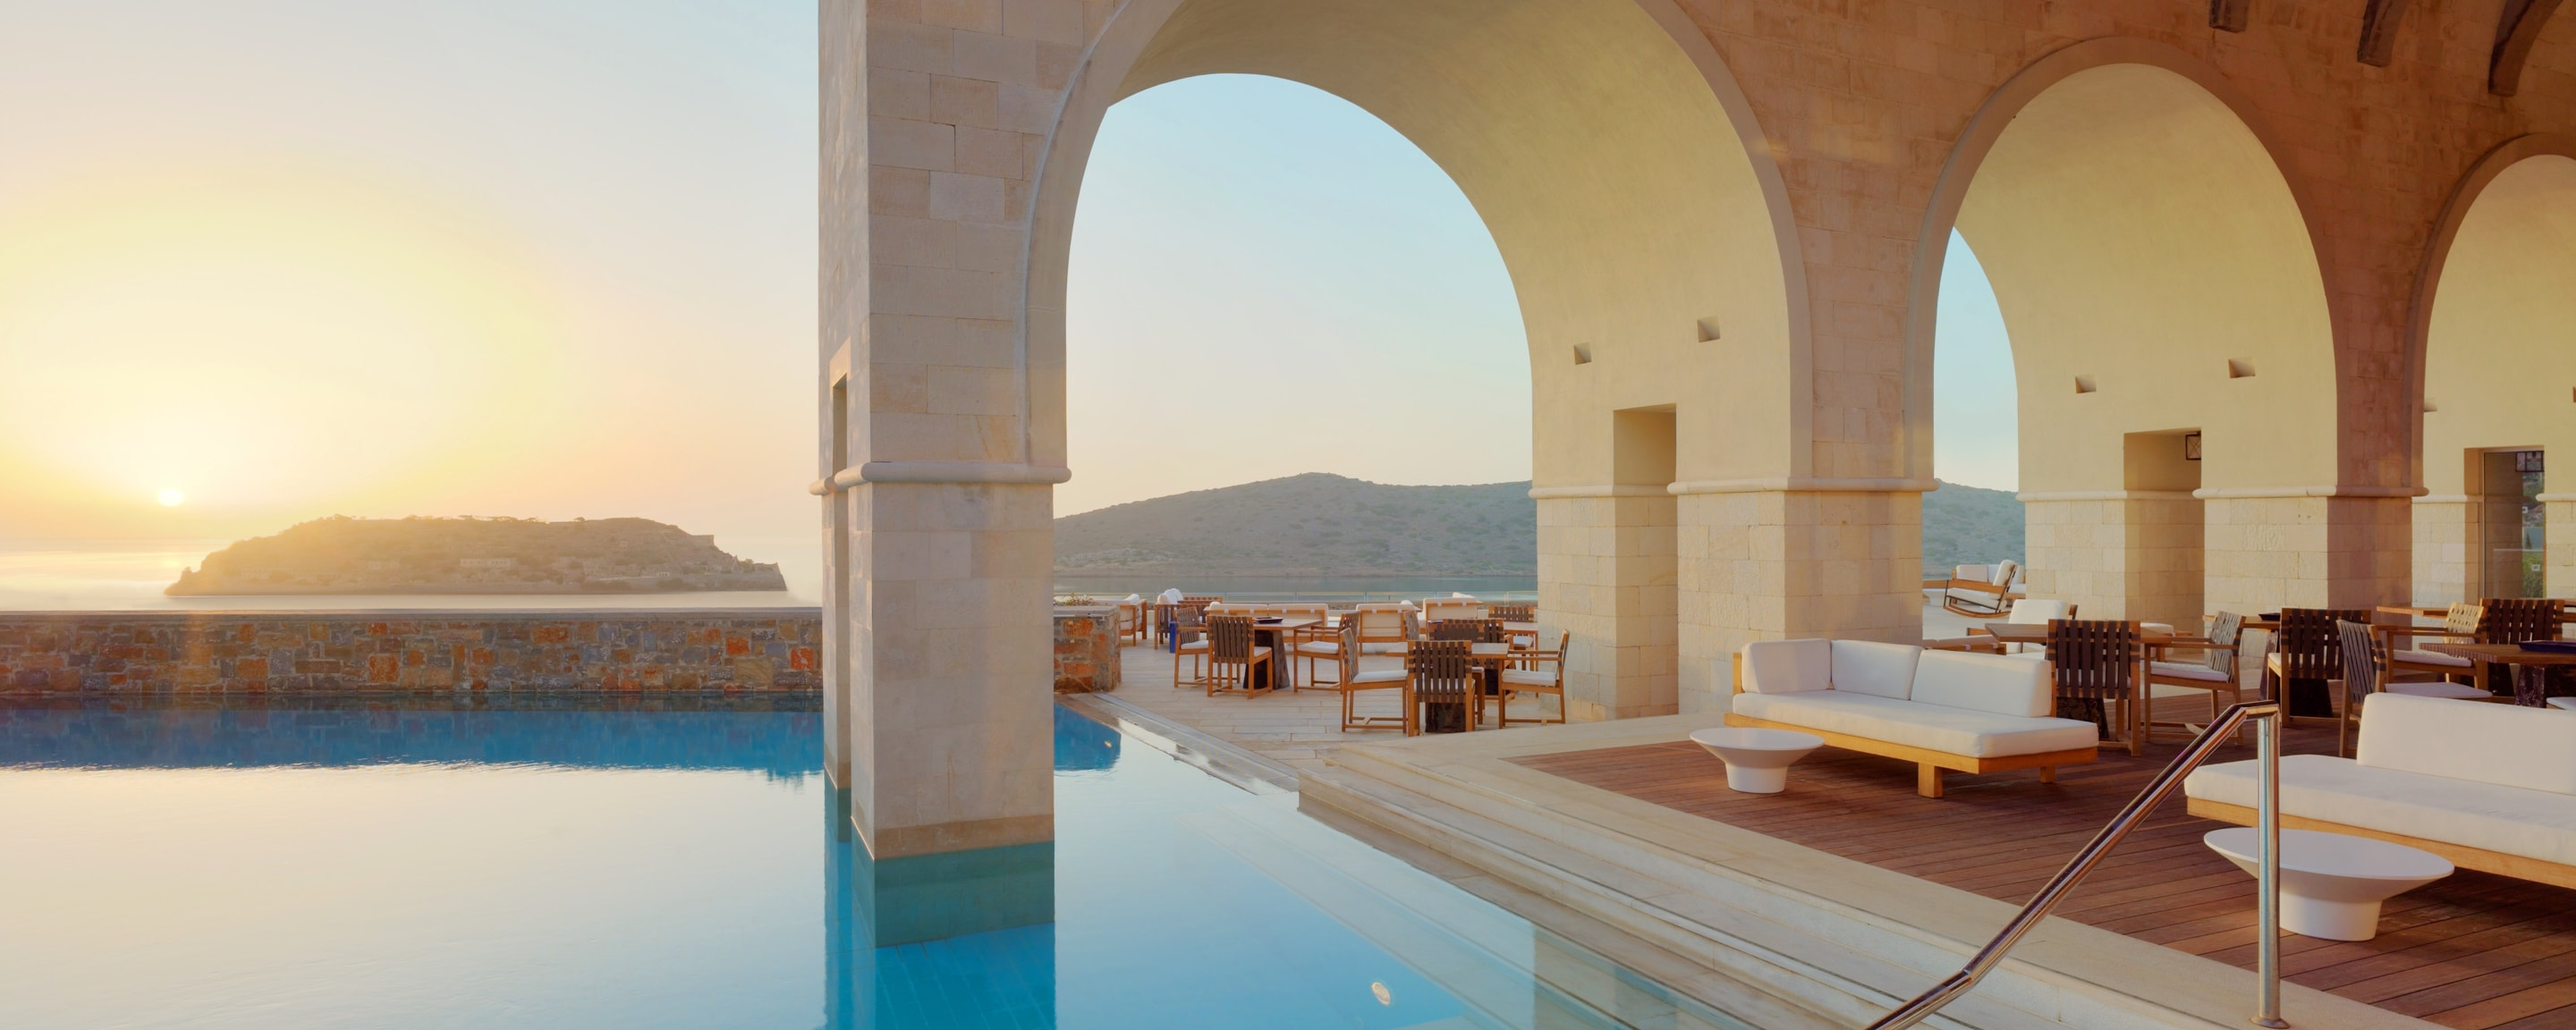 Outdoors lounge with stone archways overlooking the pool